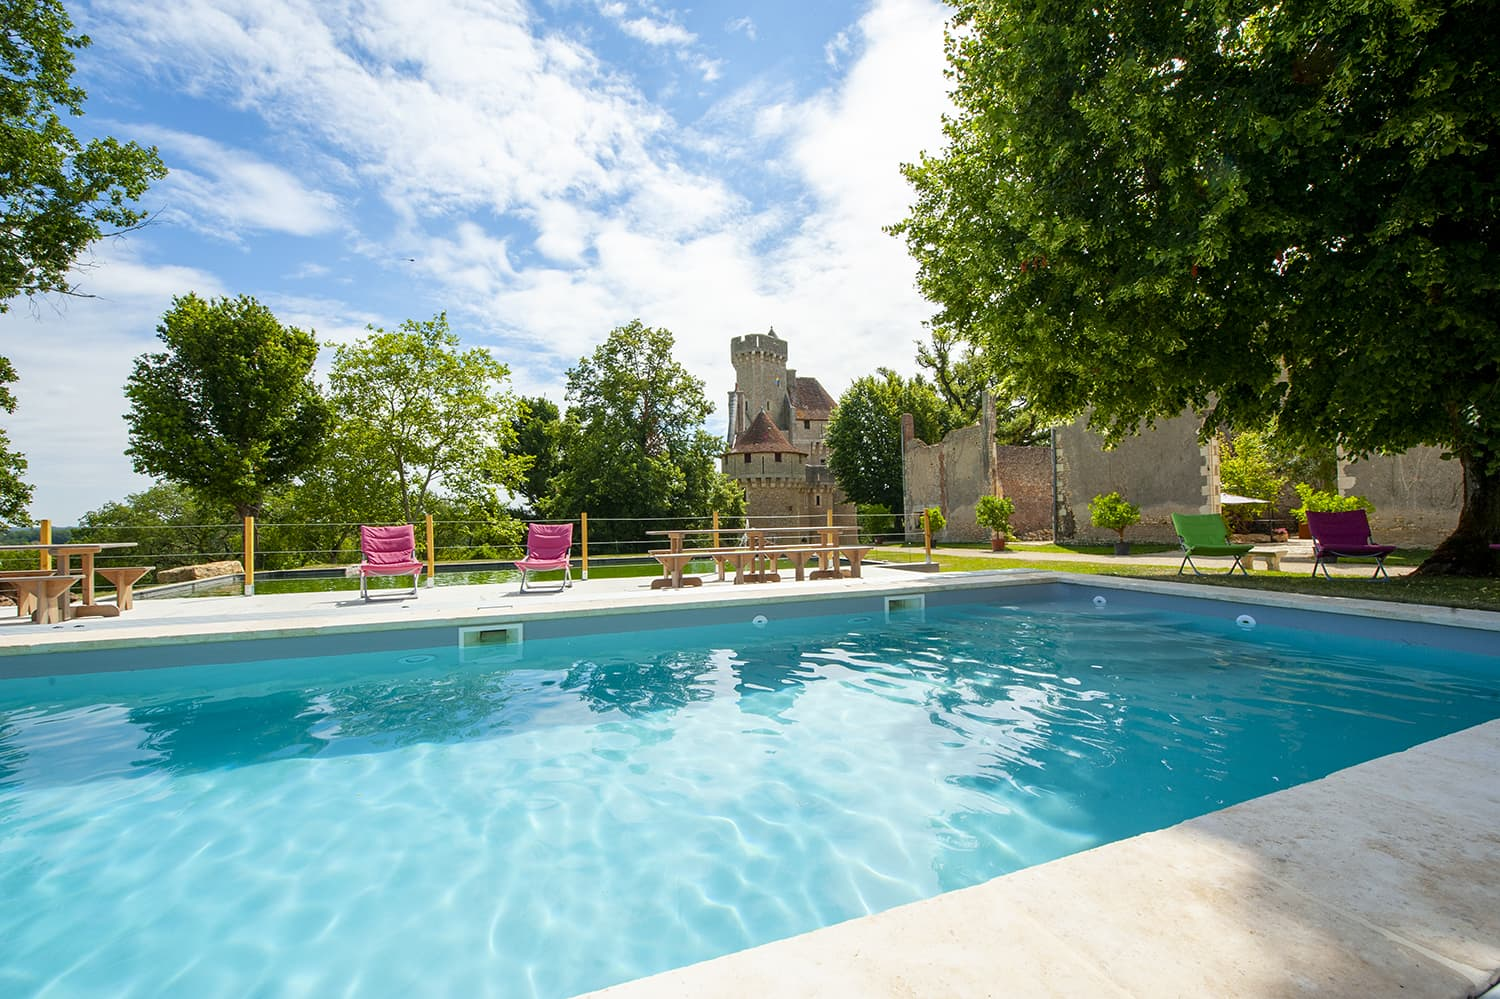 Vacation château in Centre-Val de Loire with private, heated pool